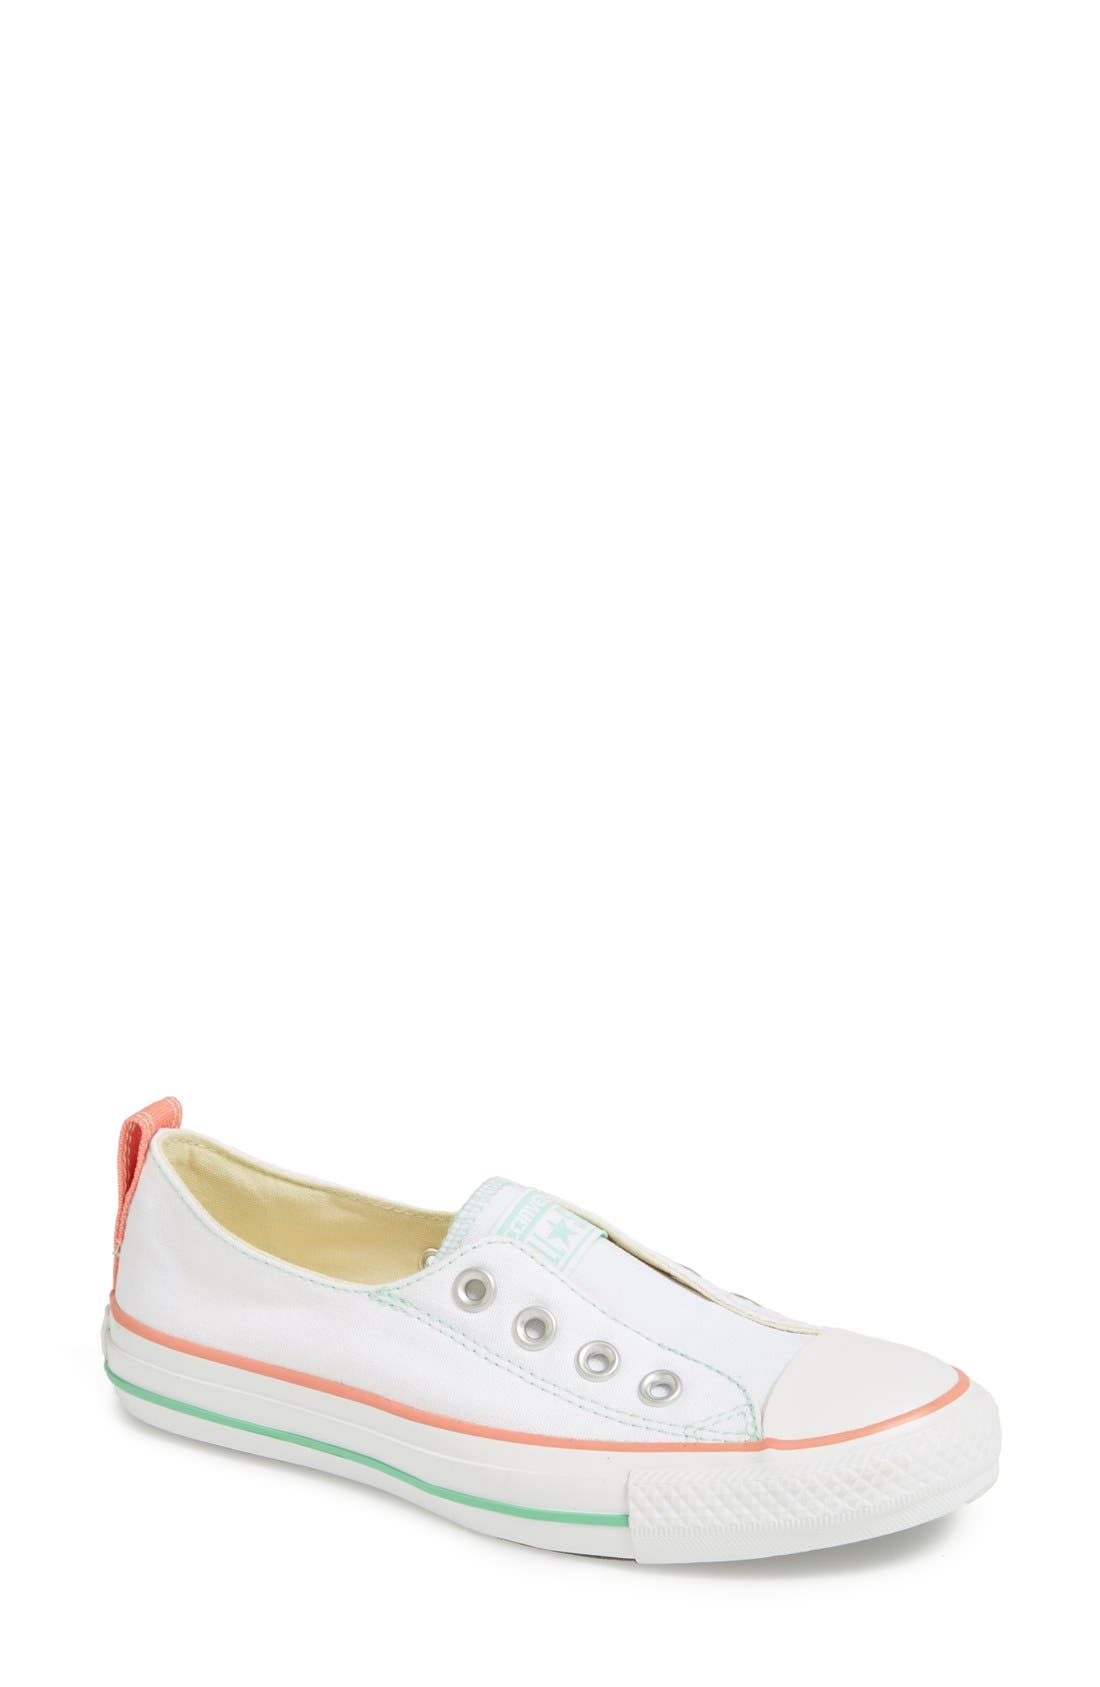 Alternate Image 1 Selected - Converse Chuck Taylor® All Star® Laceless Slip-On Sneaker (Women)